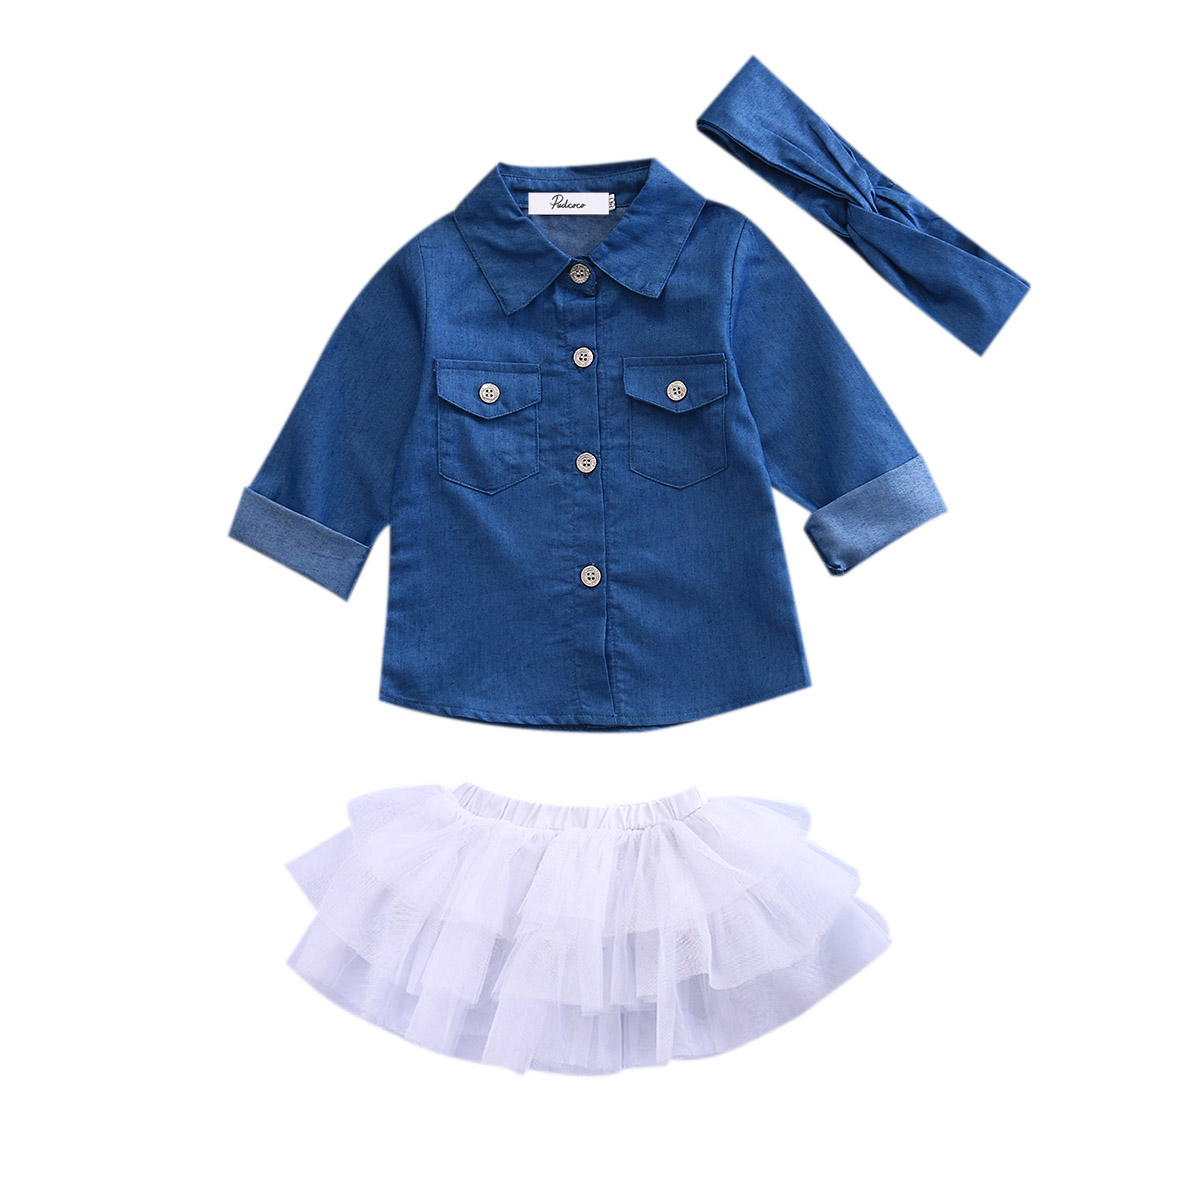 Girls Tops Shirt Tutu Skirts Ruffles Cute Party 3pcs Outfits Clothing Set Toddler Kids Baby Girl Clothes Set Denim 2pcs children outfit clothes kids baby girl off shoulder cotton ruffled sleeve tops striped t shirt blue denim jeans sunsuit set